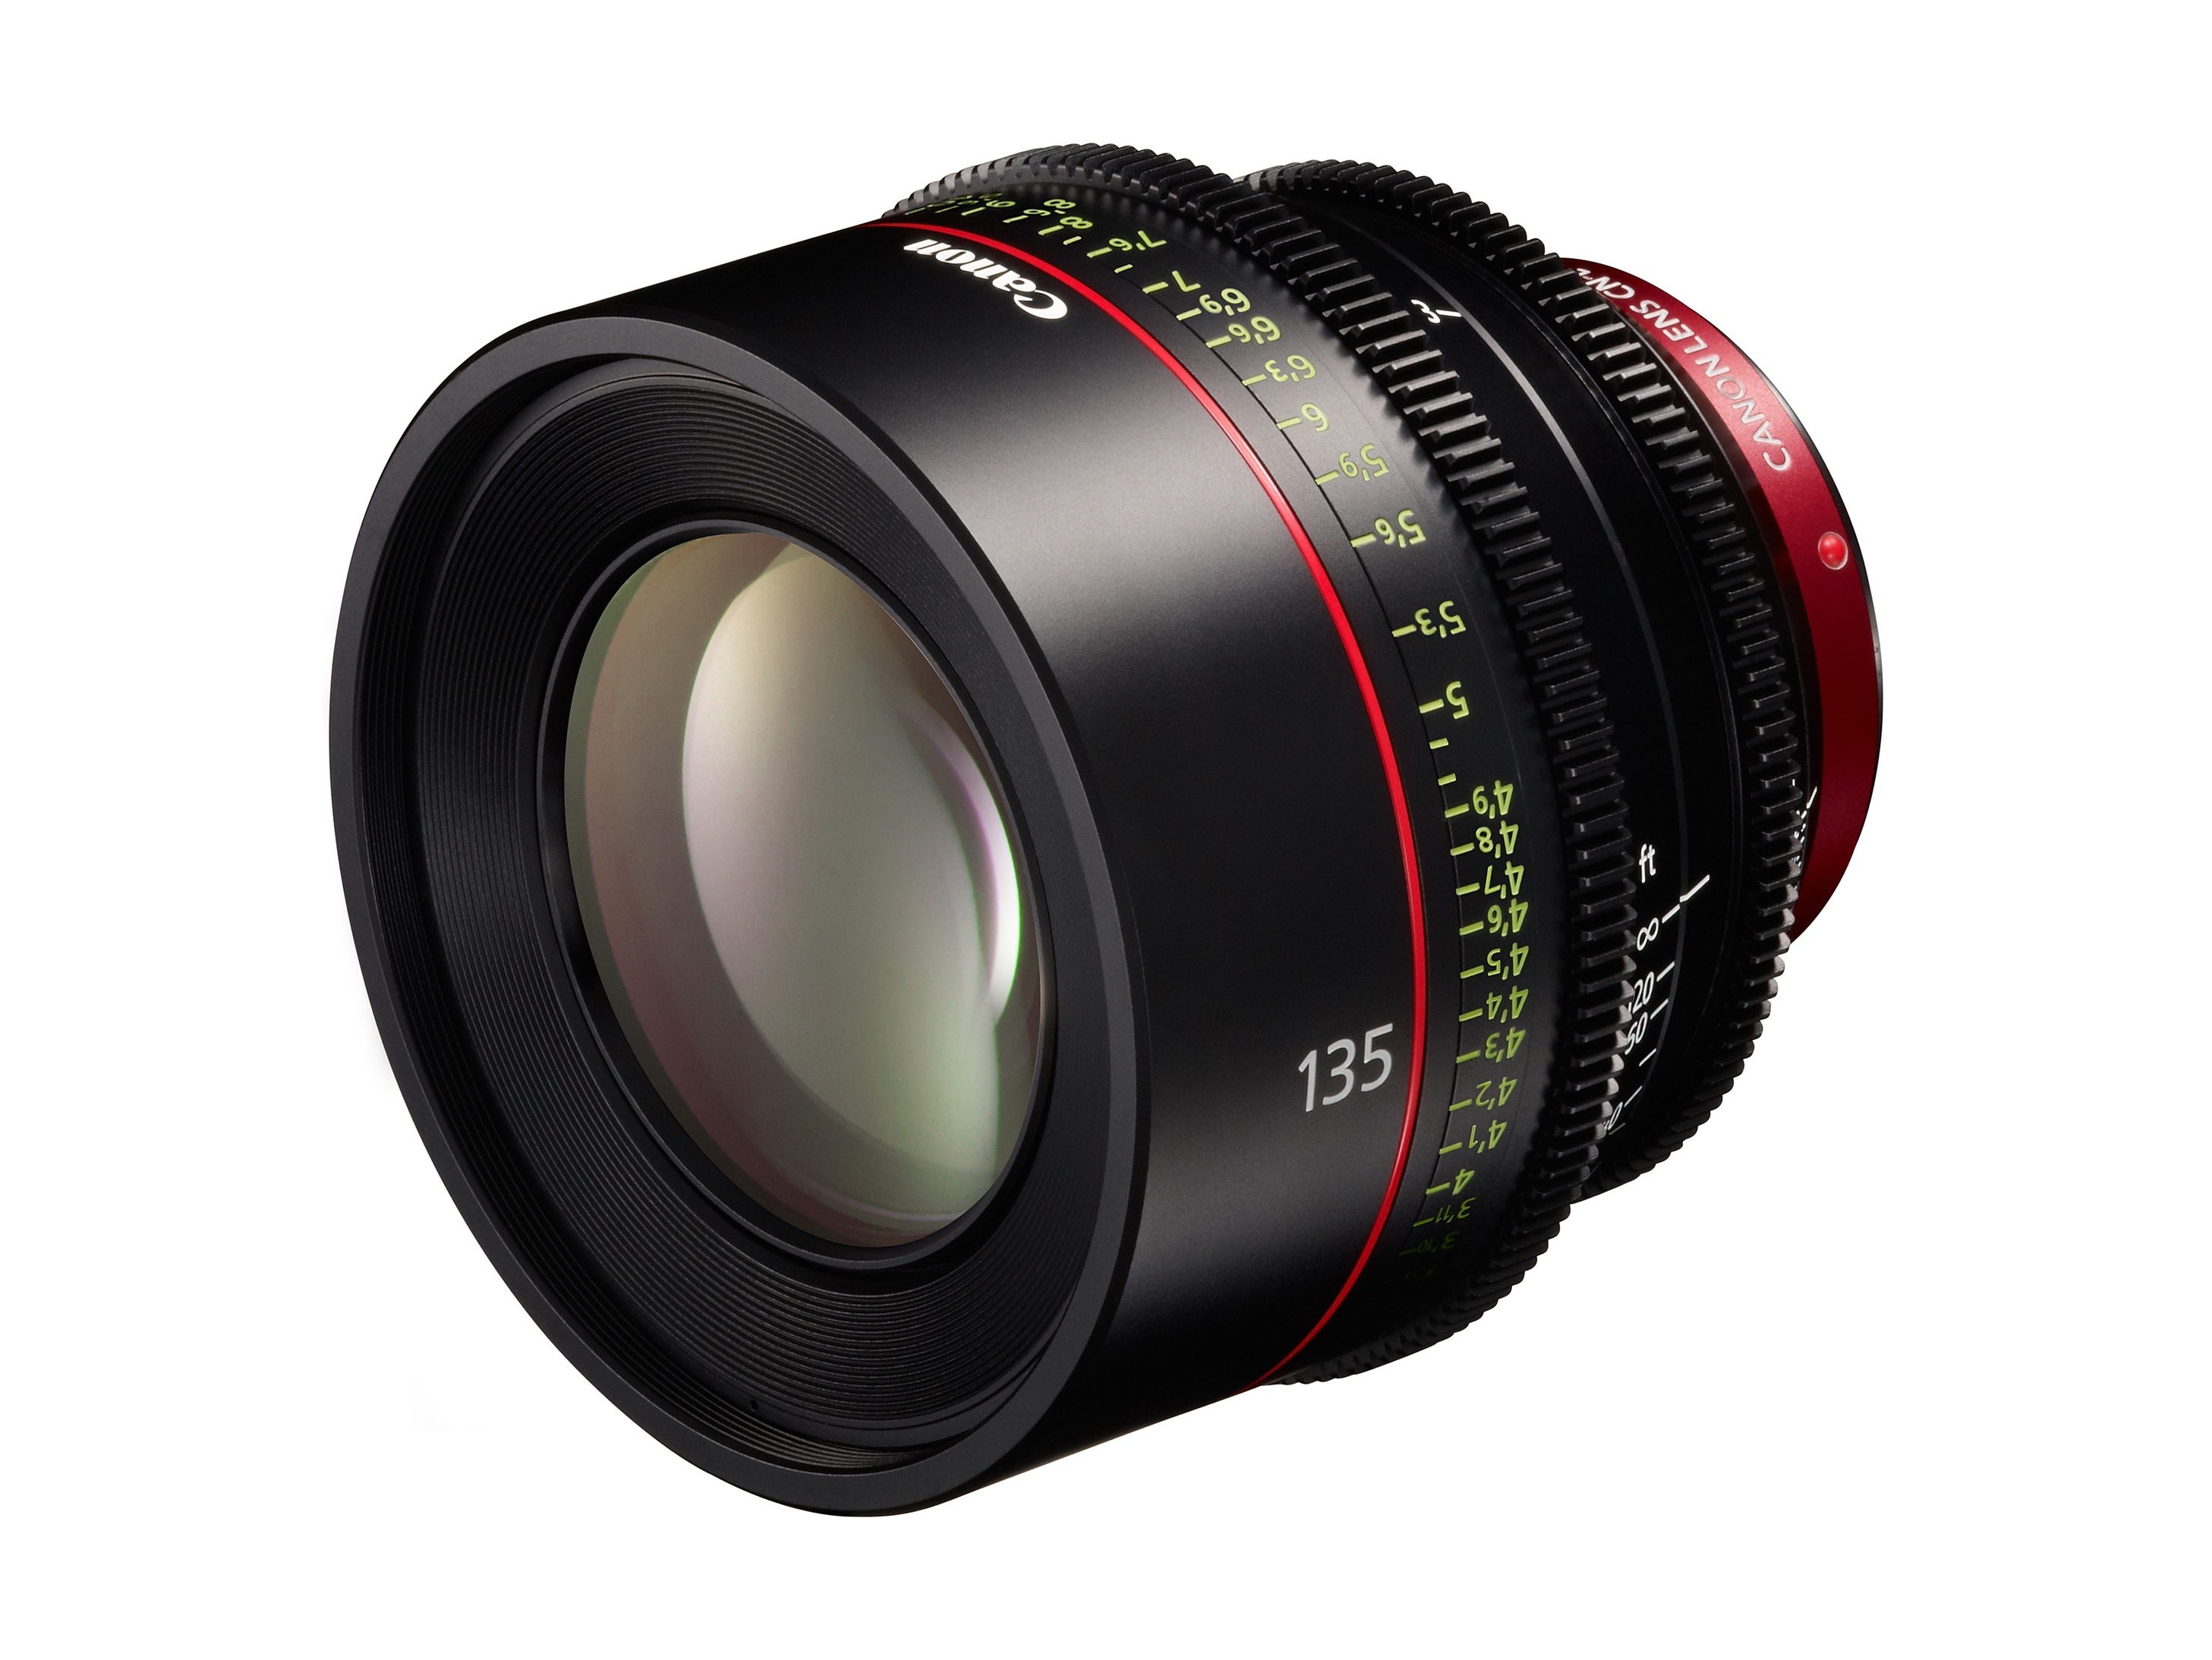 Canon Introduces Two Additions To Their Cinema Prime Line-Up